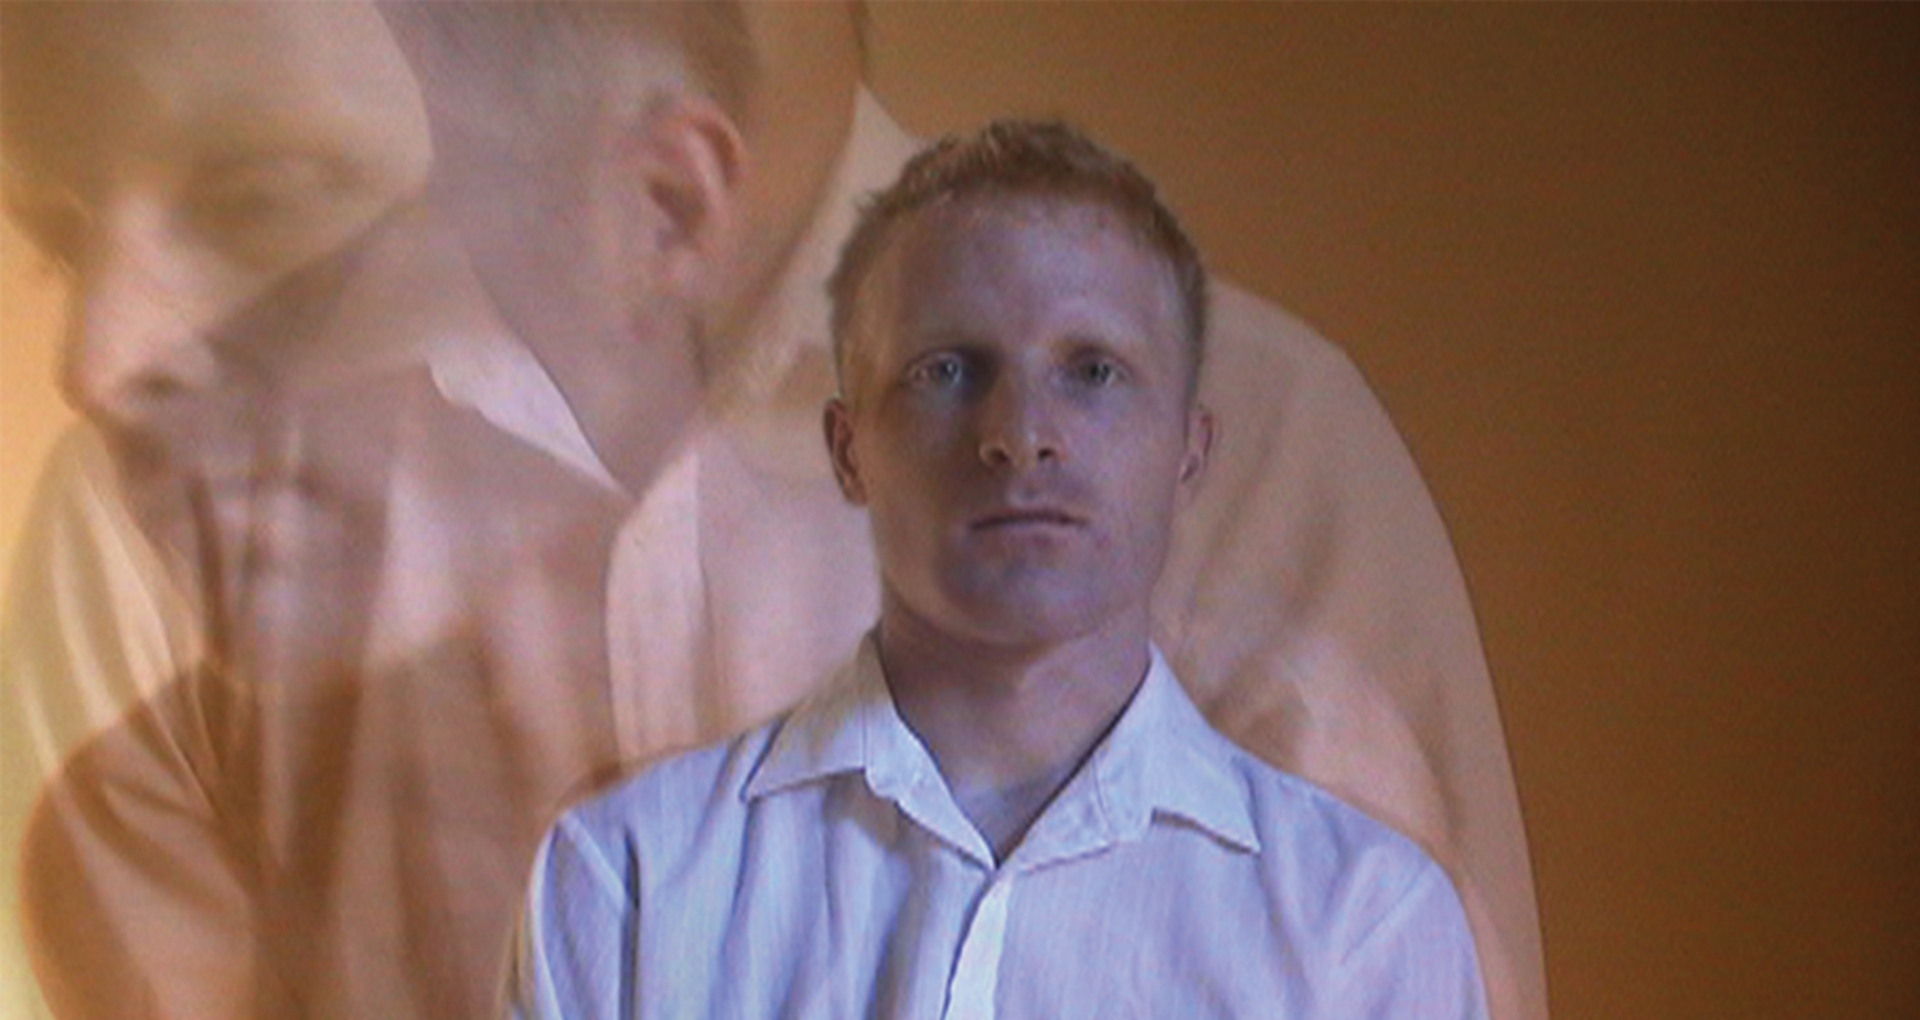 Color portrait of a blond man in white shirt. Overlay transparent images